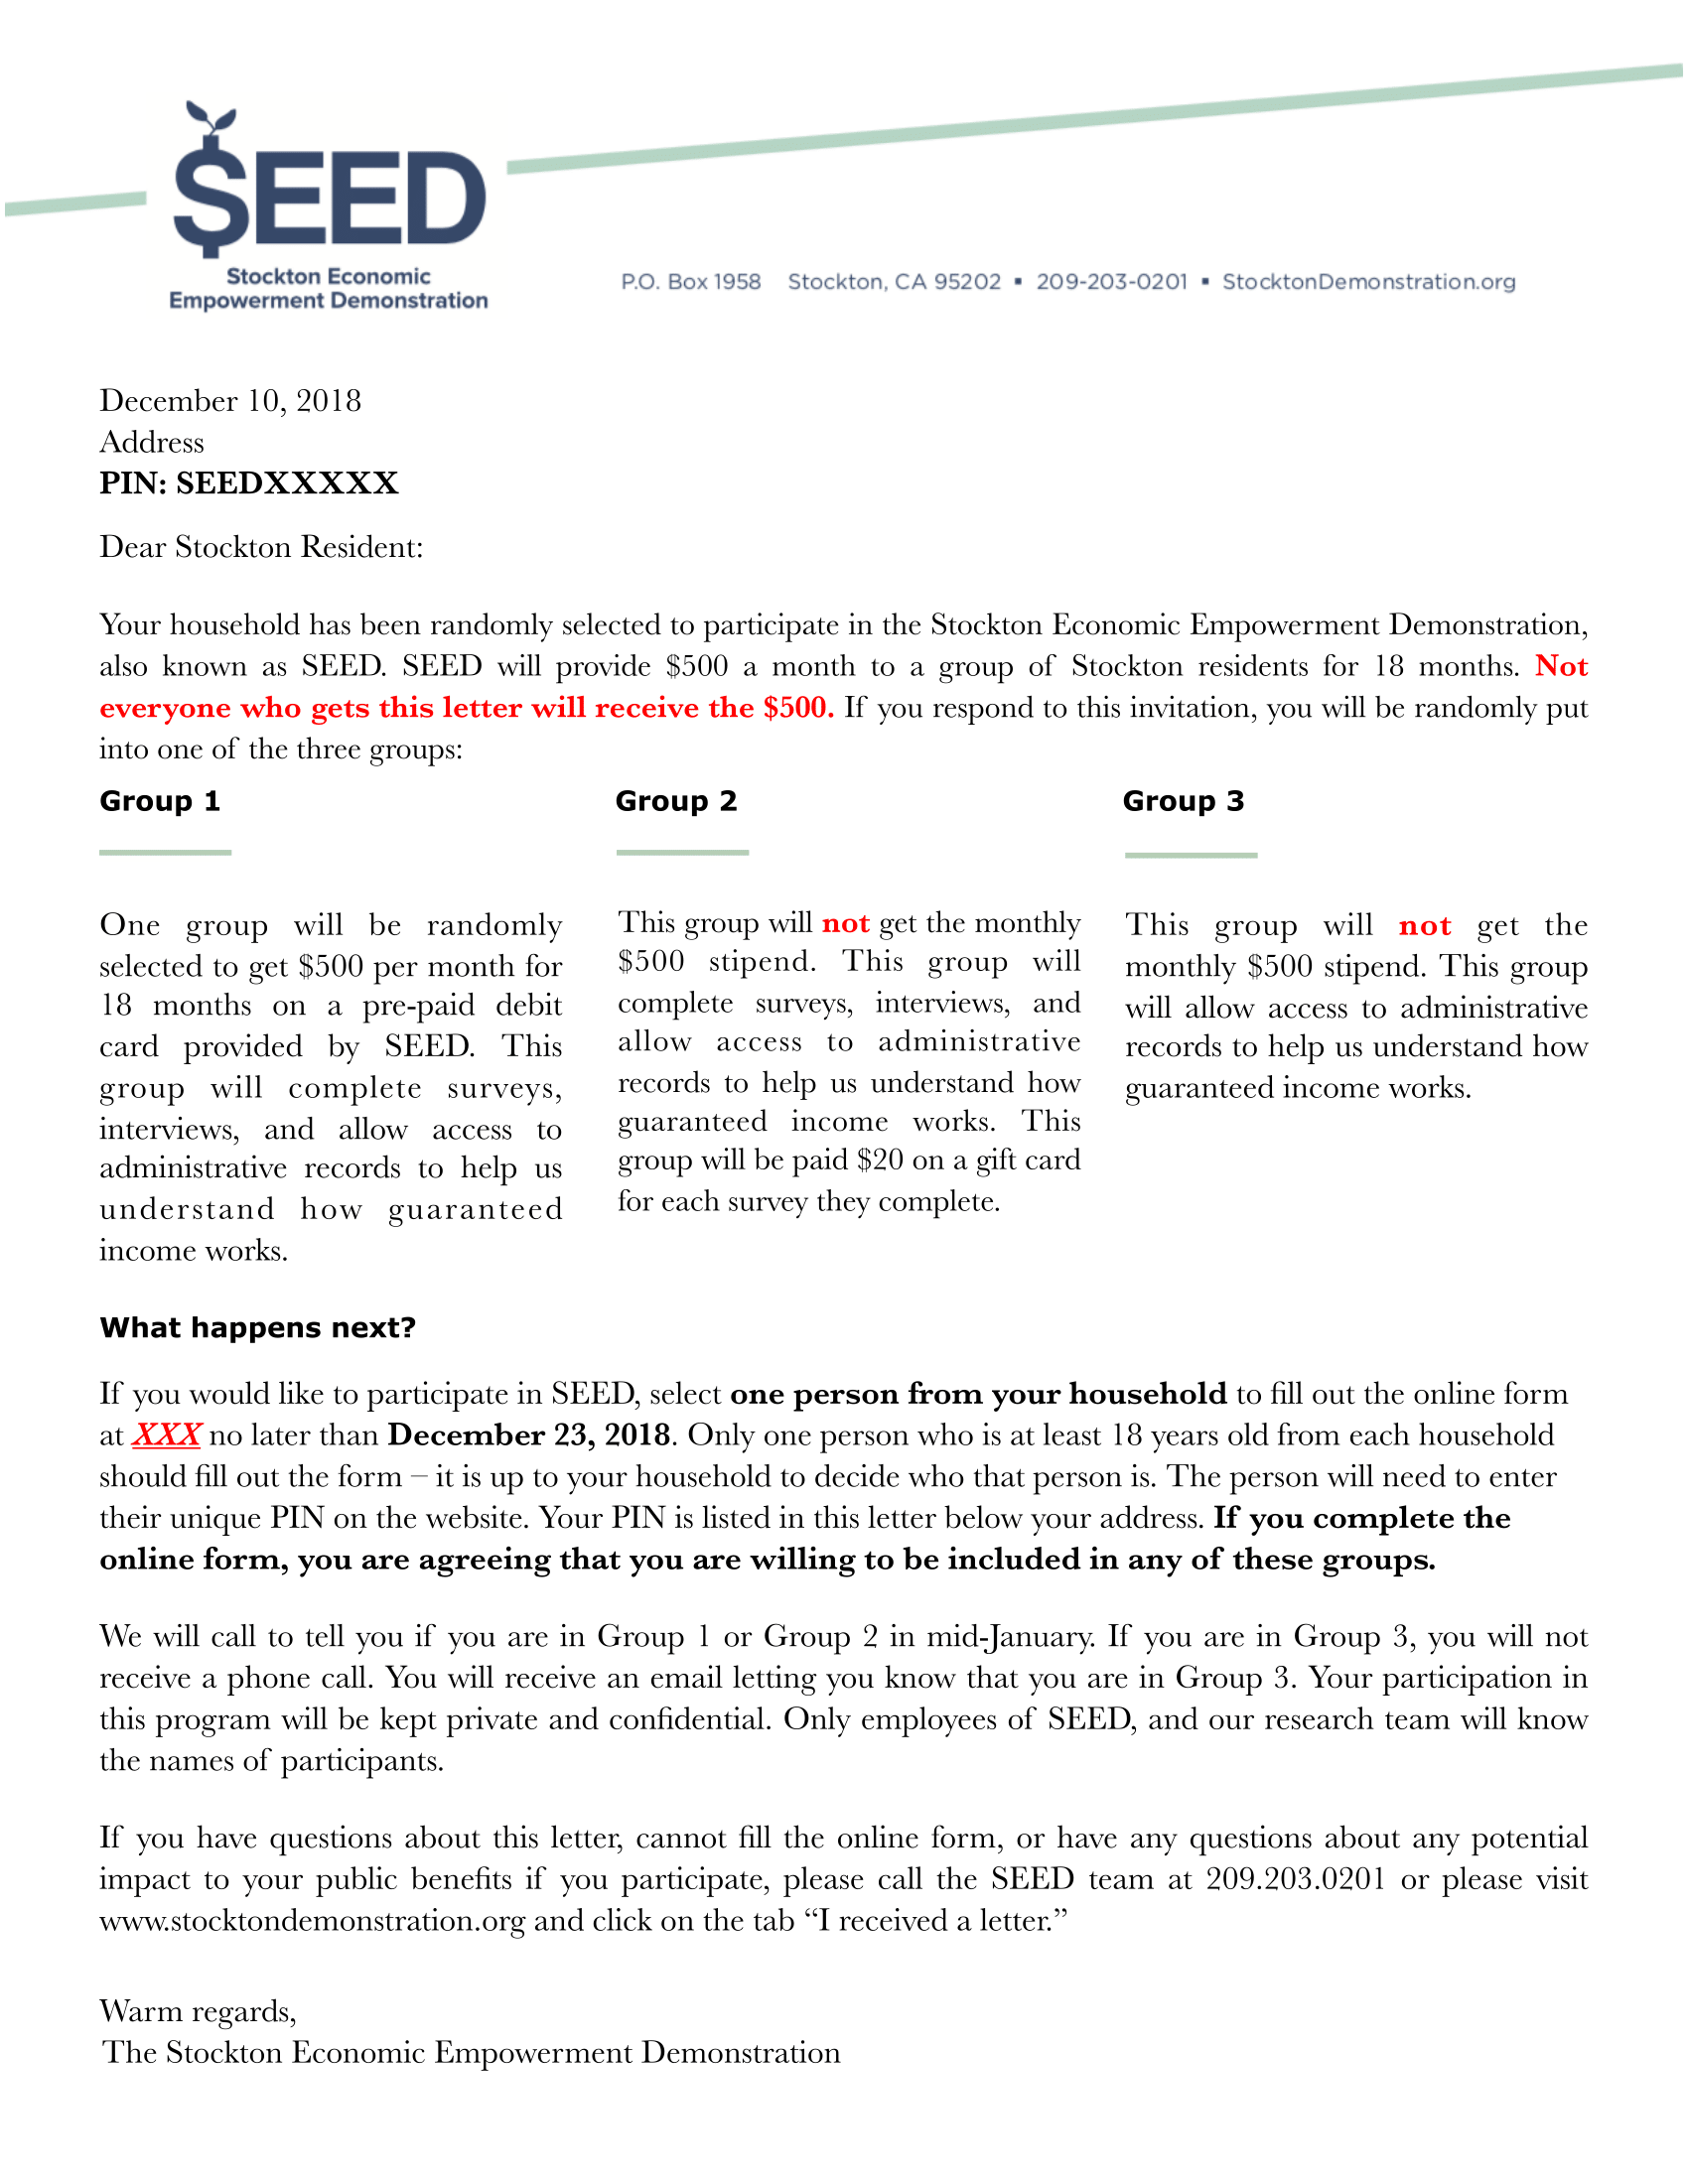 SEED-Selection Letter-1.png